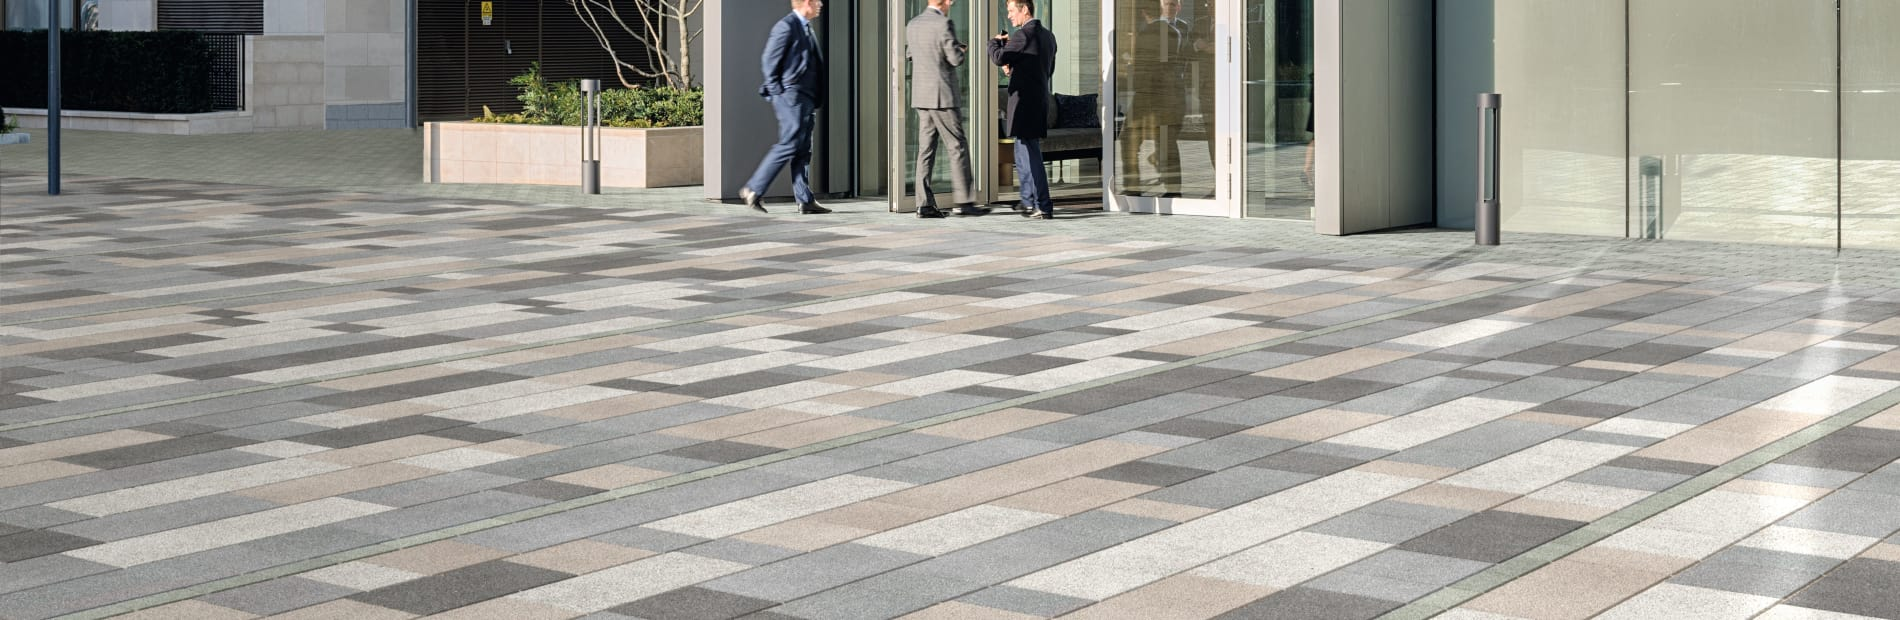 modal paving - mid grey granite